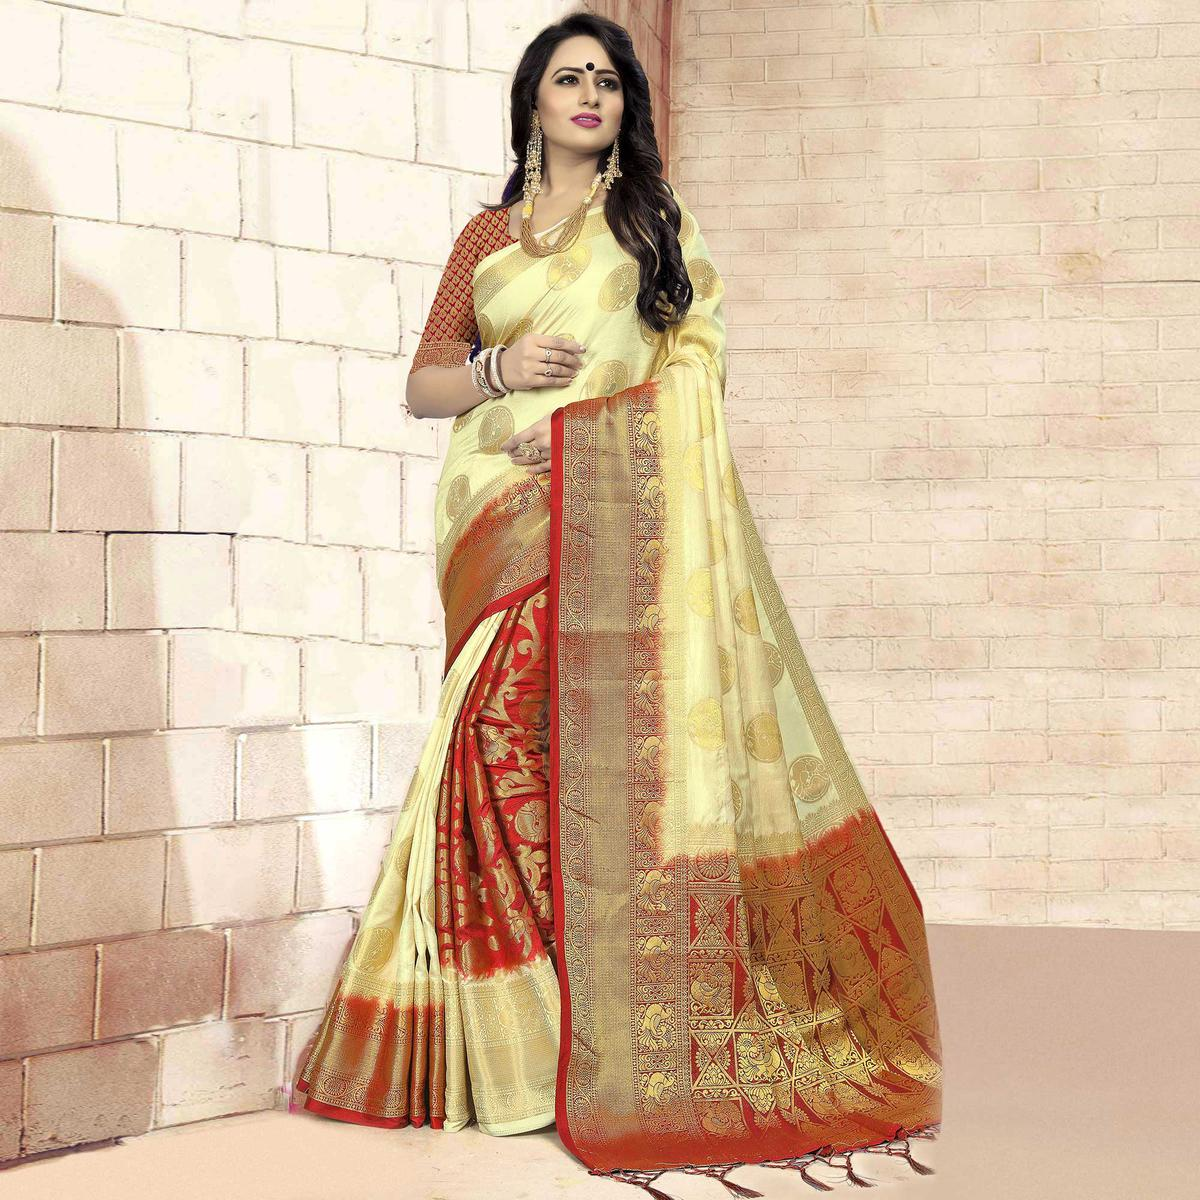 Elegant Cream - Red Colored Festive Wear Woven Art Silk Saree